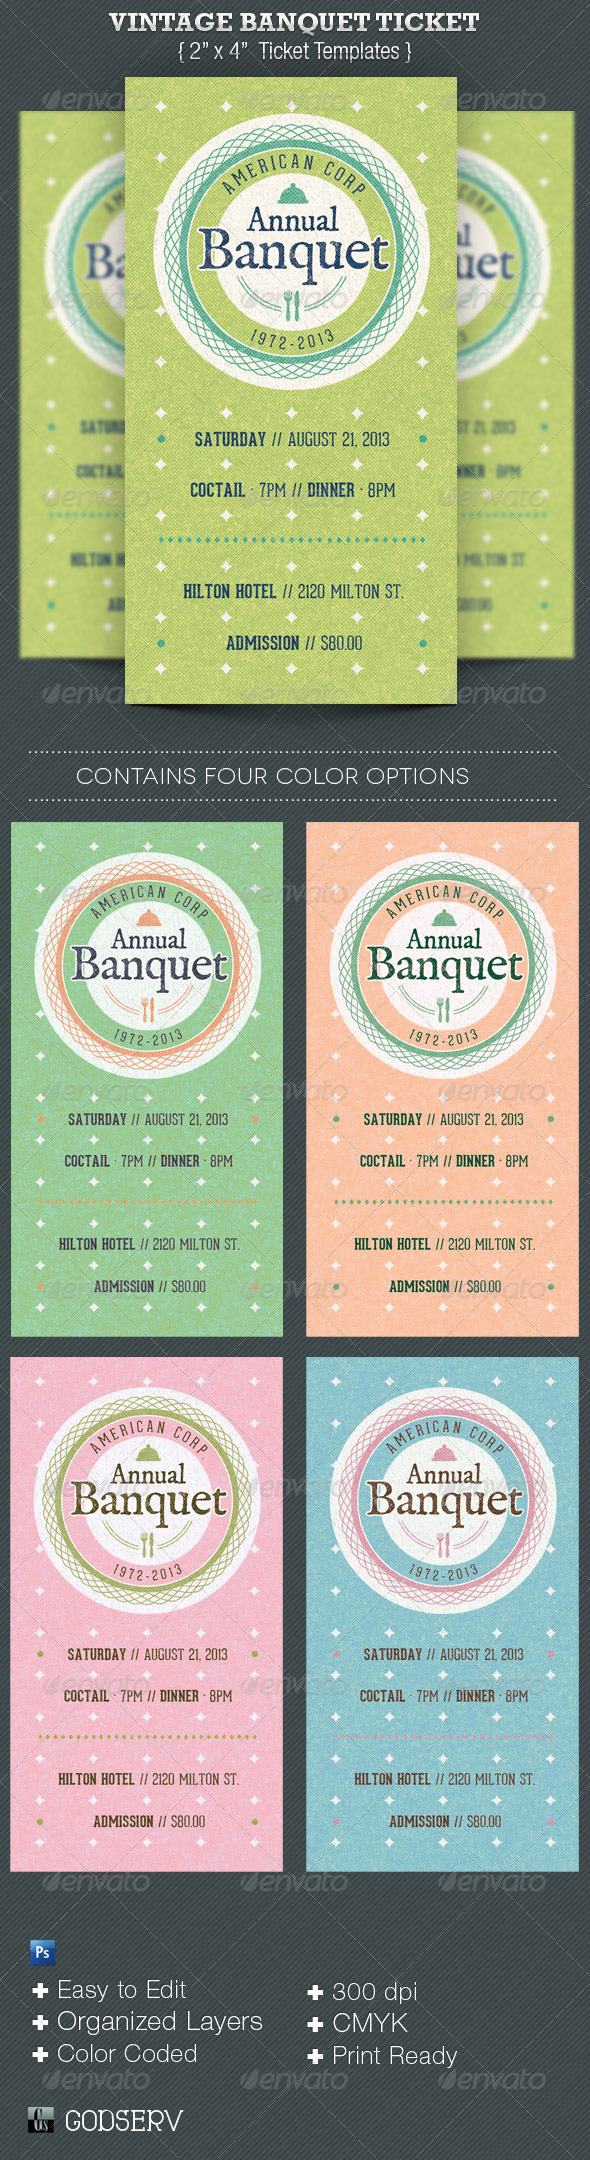 GraphicRiver Vintage Banquet Ticket Template 3693183